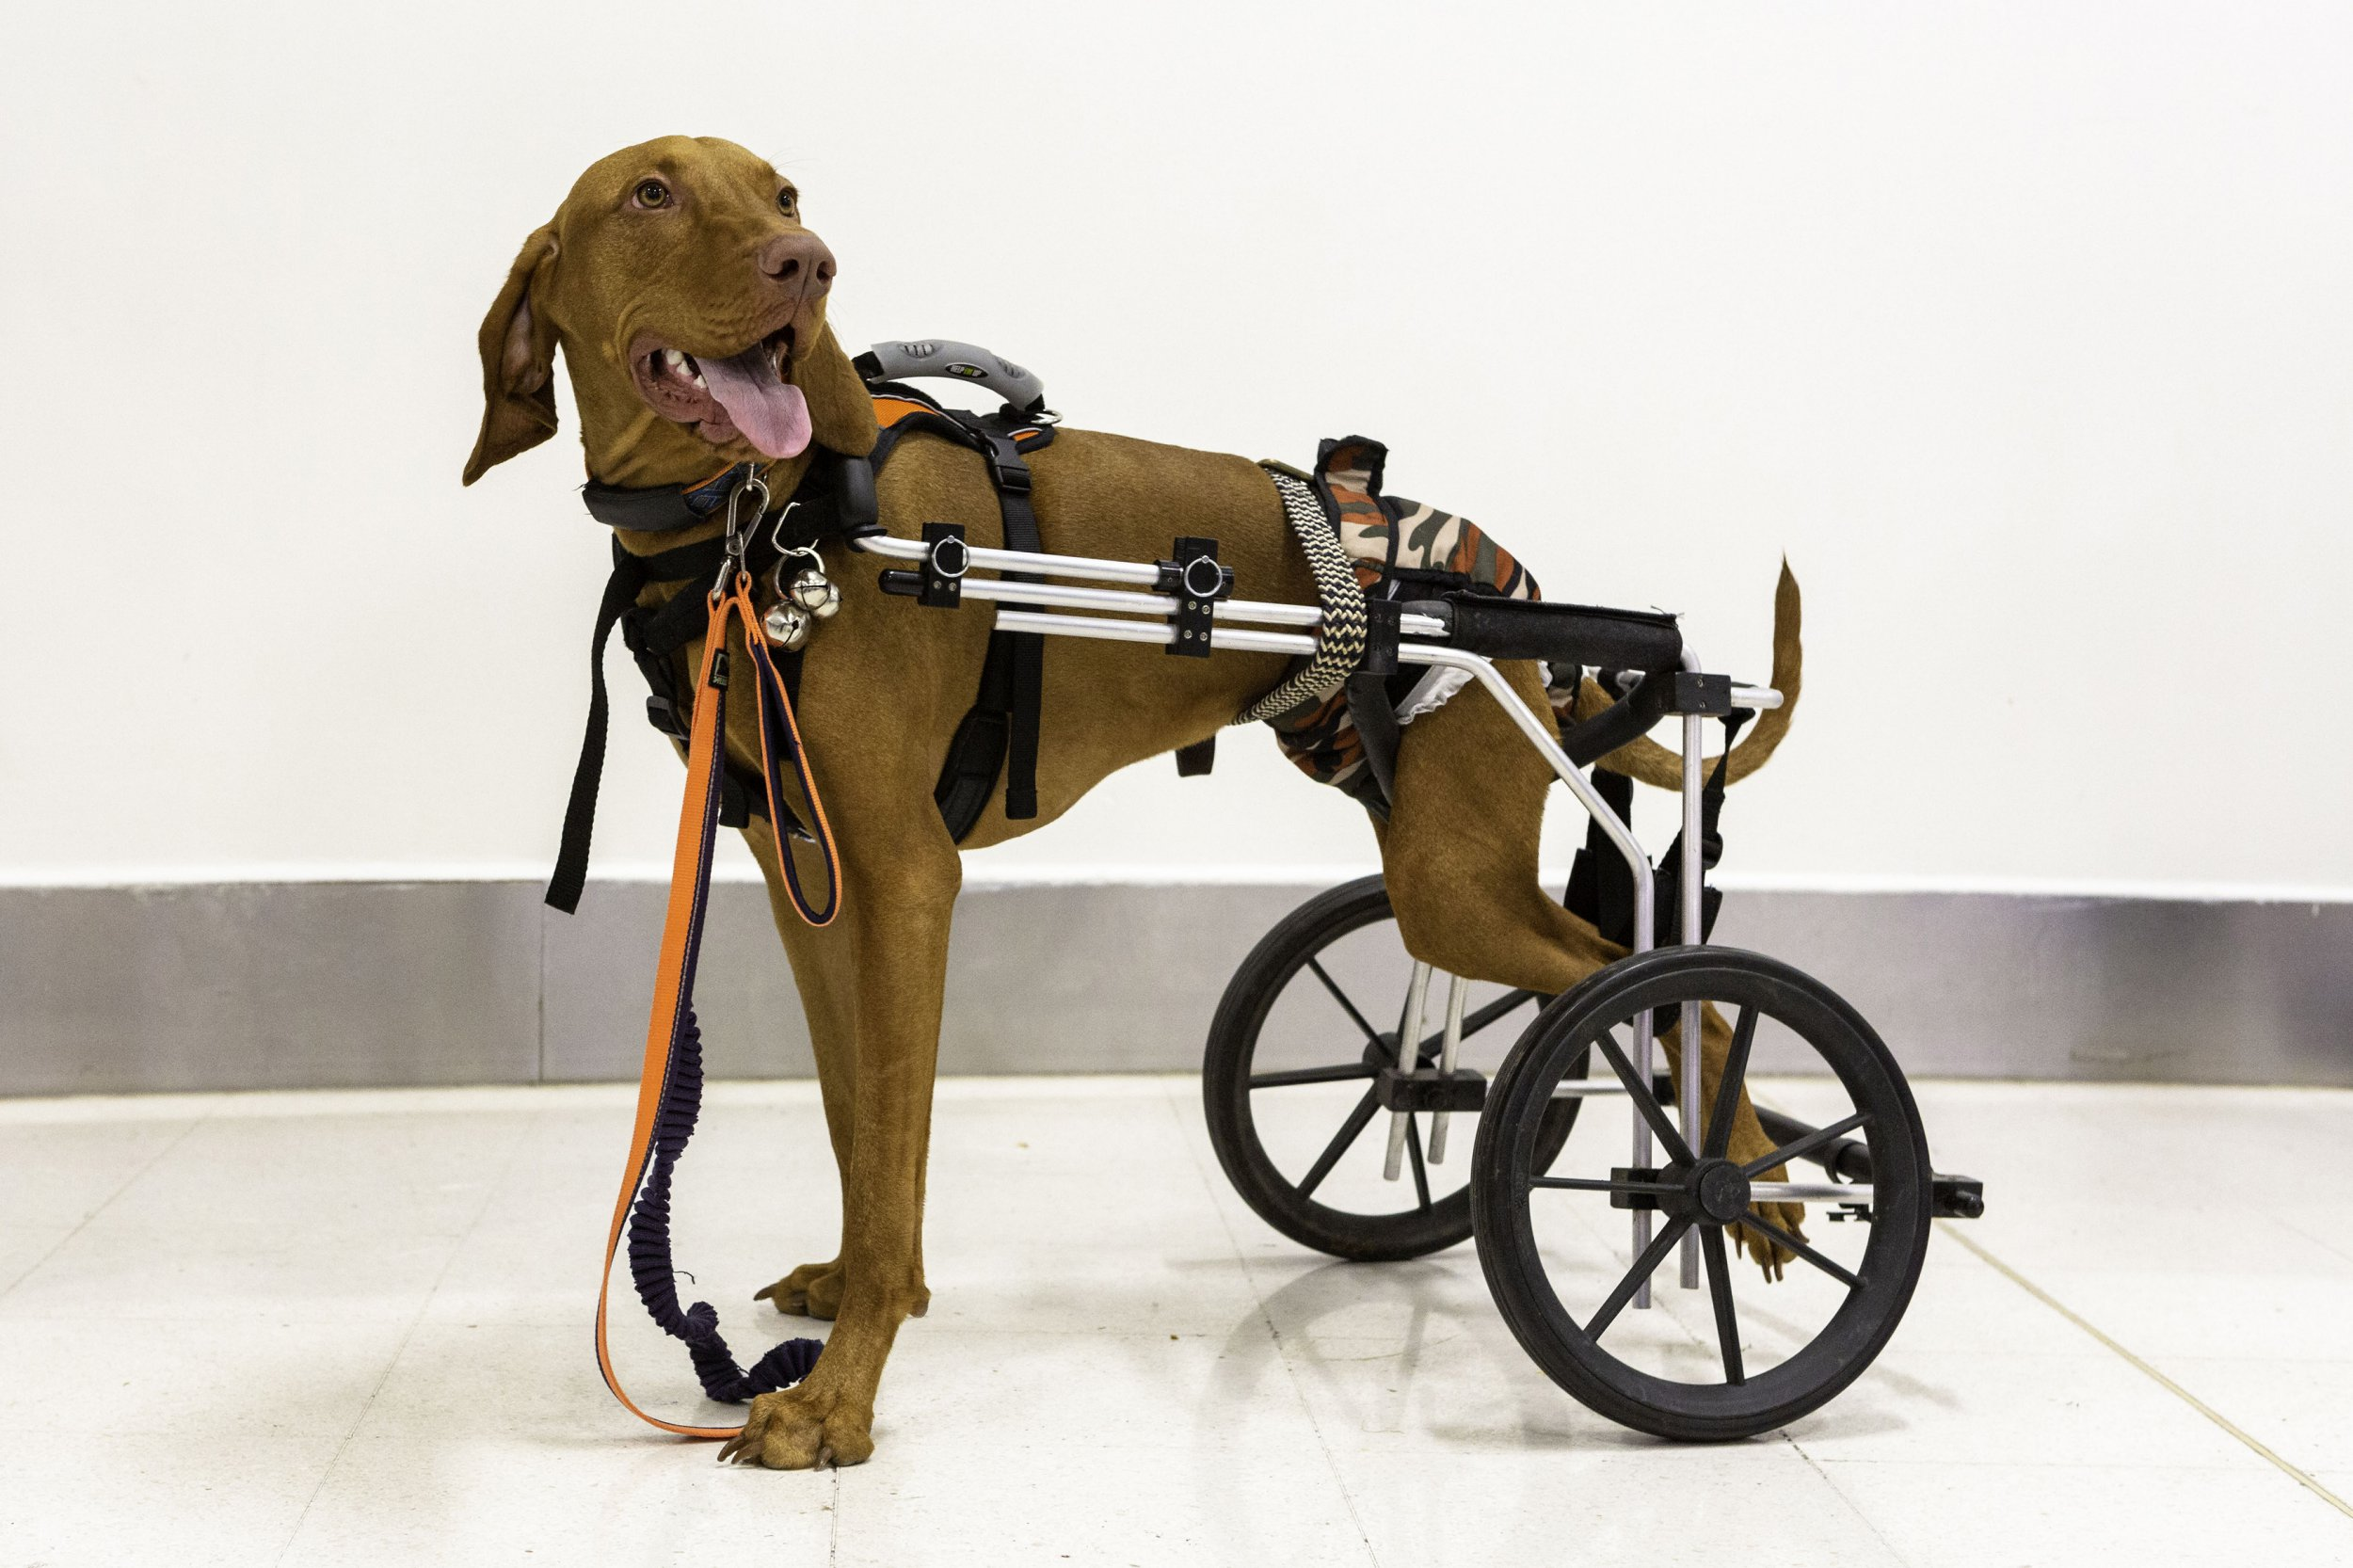 PIC FROM Kennedy News and Media (PICTURED: Gilbertthe dog) A disabled puppy fitted with a wheelchair after losing his hind legs has been given a hero???s welcome at Crufts - just days after taking his first steps. Vets wanted to put one-year-old Hungarian Vizsla Gilbert down after he was trodden on just days after being born. But Jane and Kevin Bircumshaw took in the stricken pet and nursed him back to health, bursting into tears of joy after filming him finally walking without the aid of his special chair. SEE KENNEDY NEWS COPY - 0161 697 4266